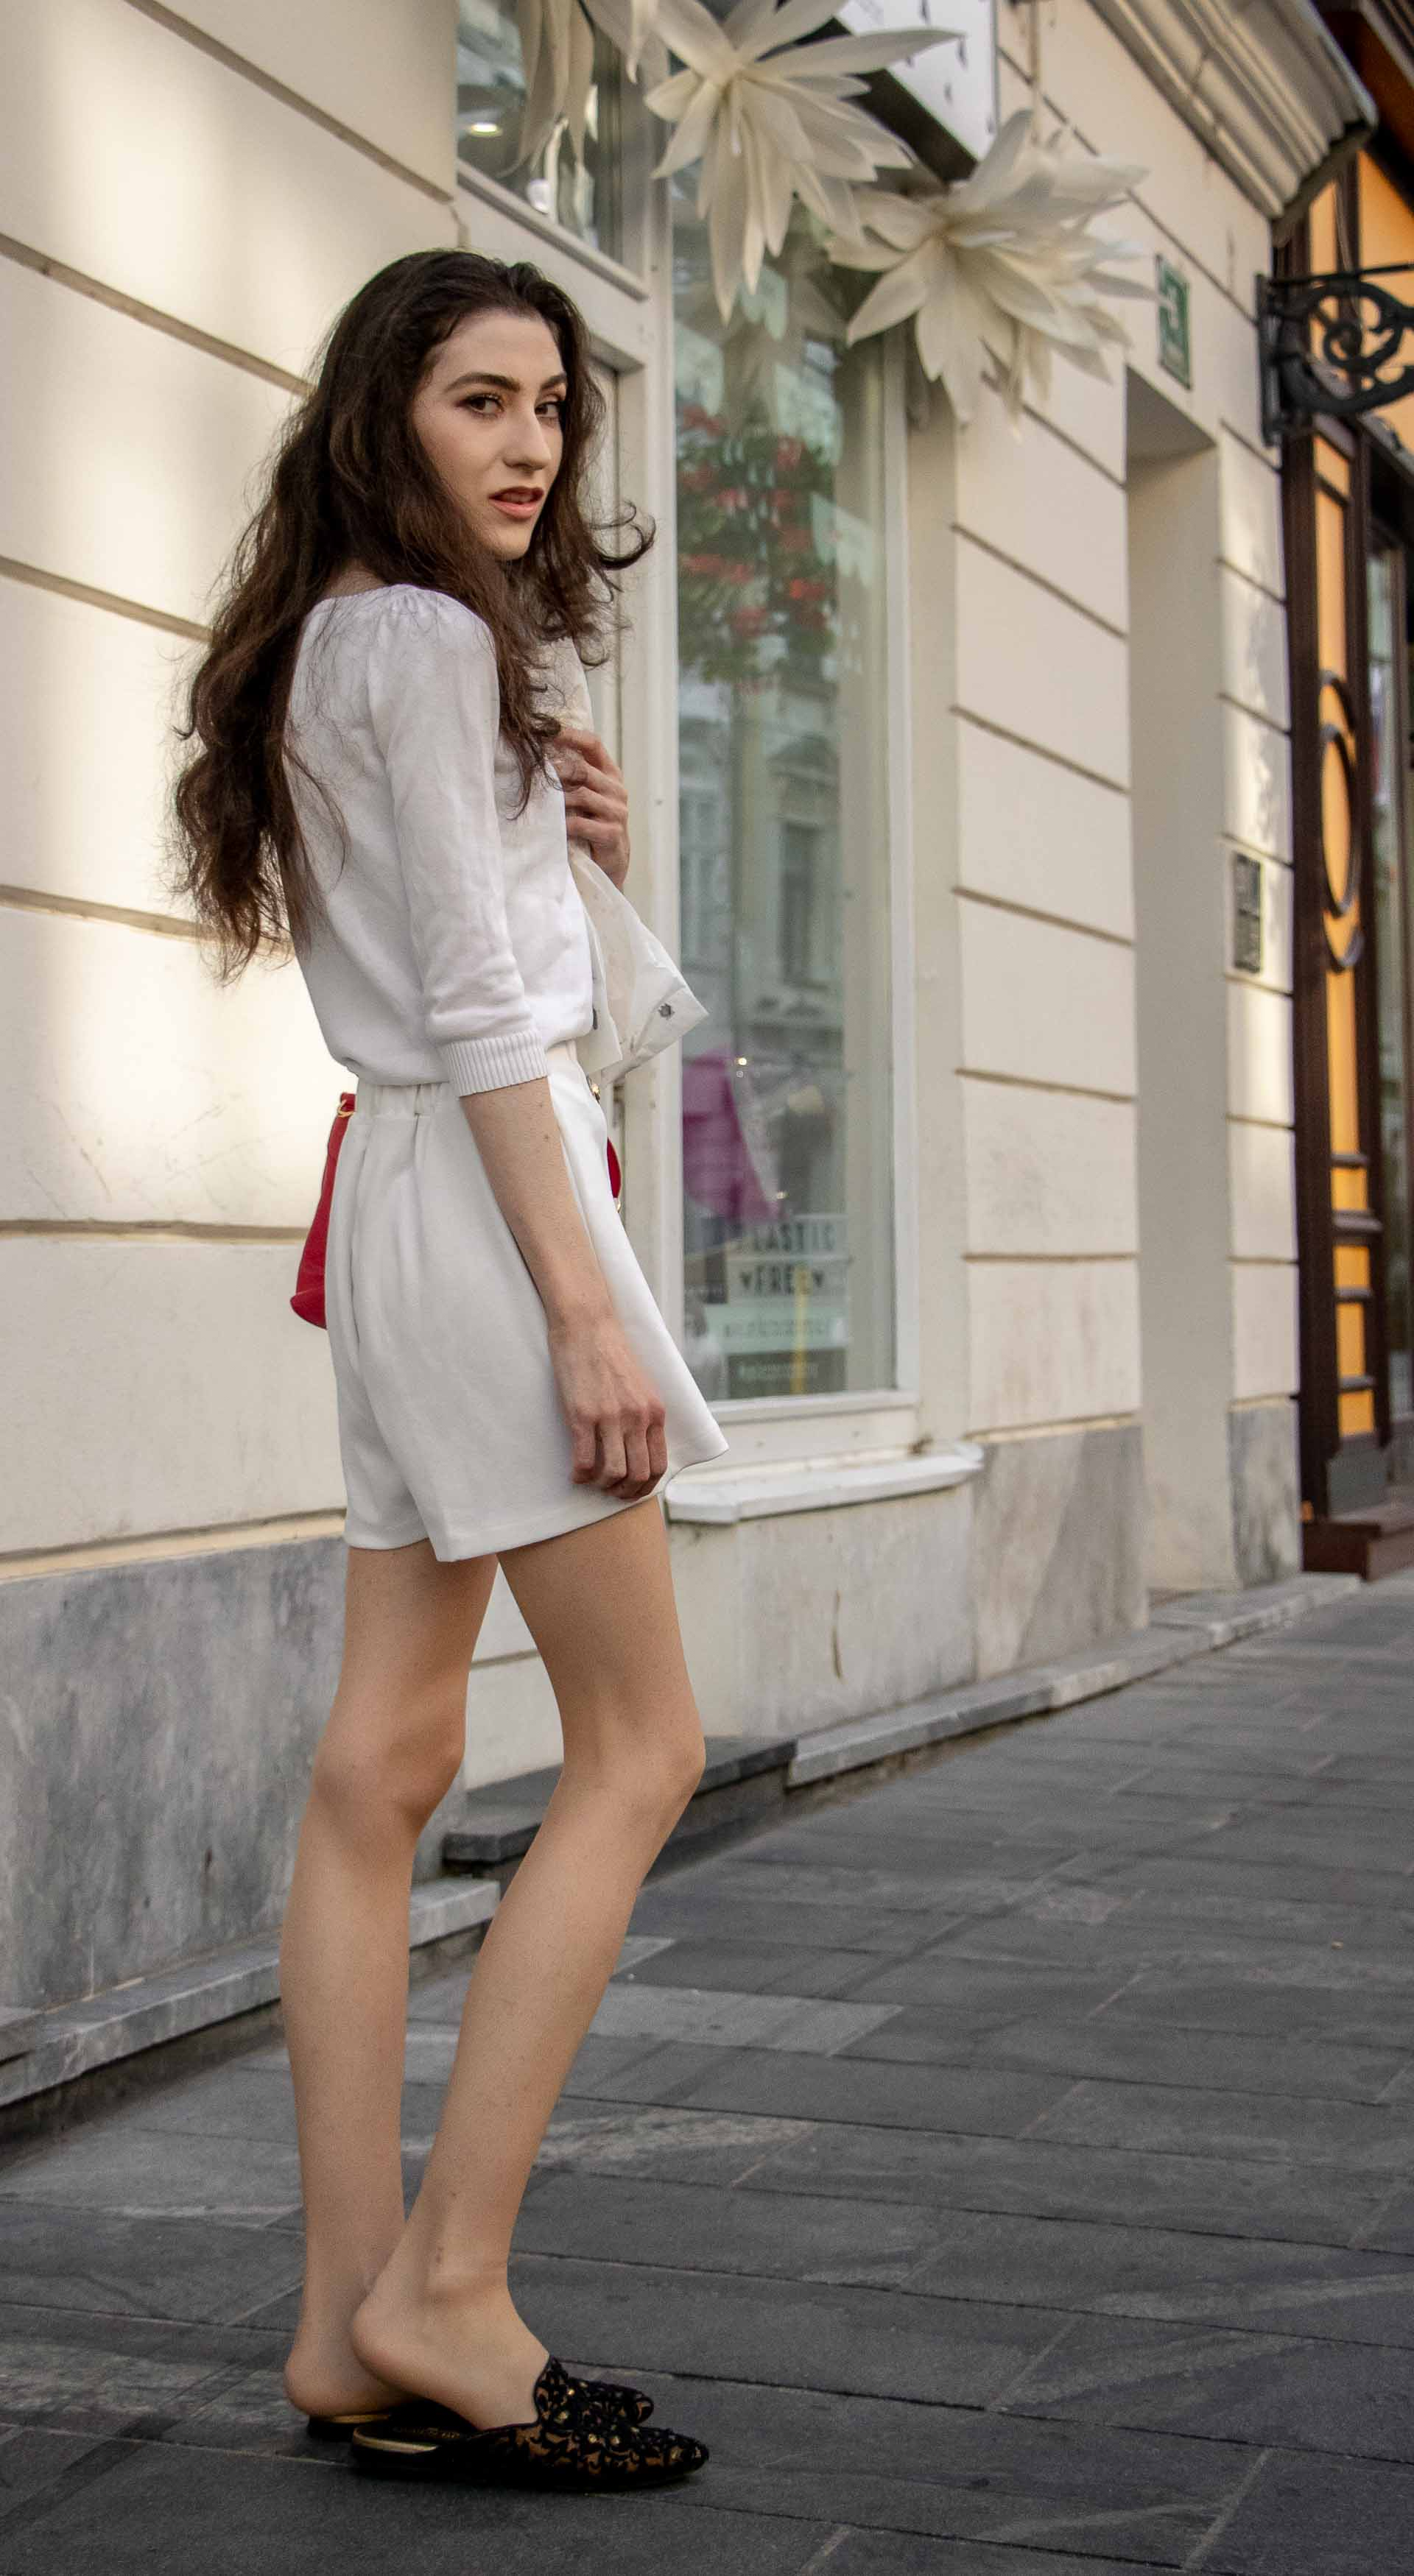 Beautiful Slovenian Fashion Blogger Veronika Lipar of Brunette from Wall dressed in all in white outfit, a white sweater, white tailored shorts, black flat slipper mules, pink top handle bag, a paper bag while on the street in Ljubljana